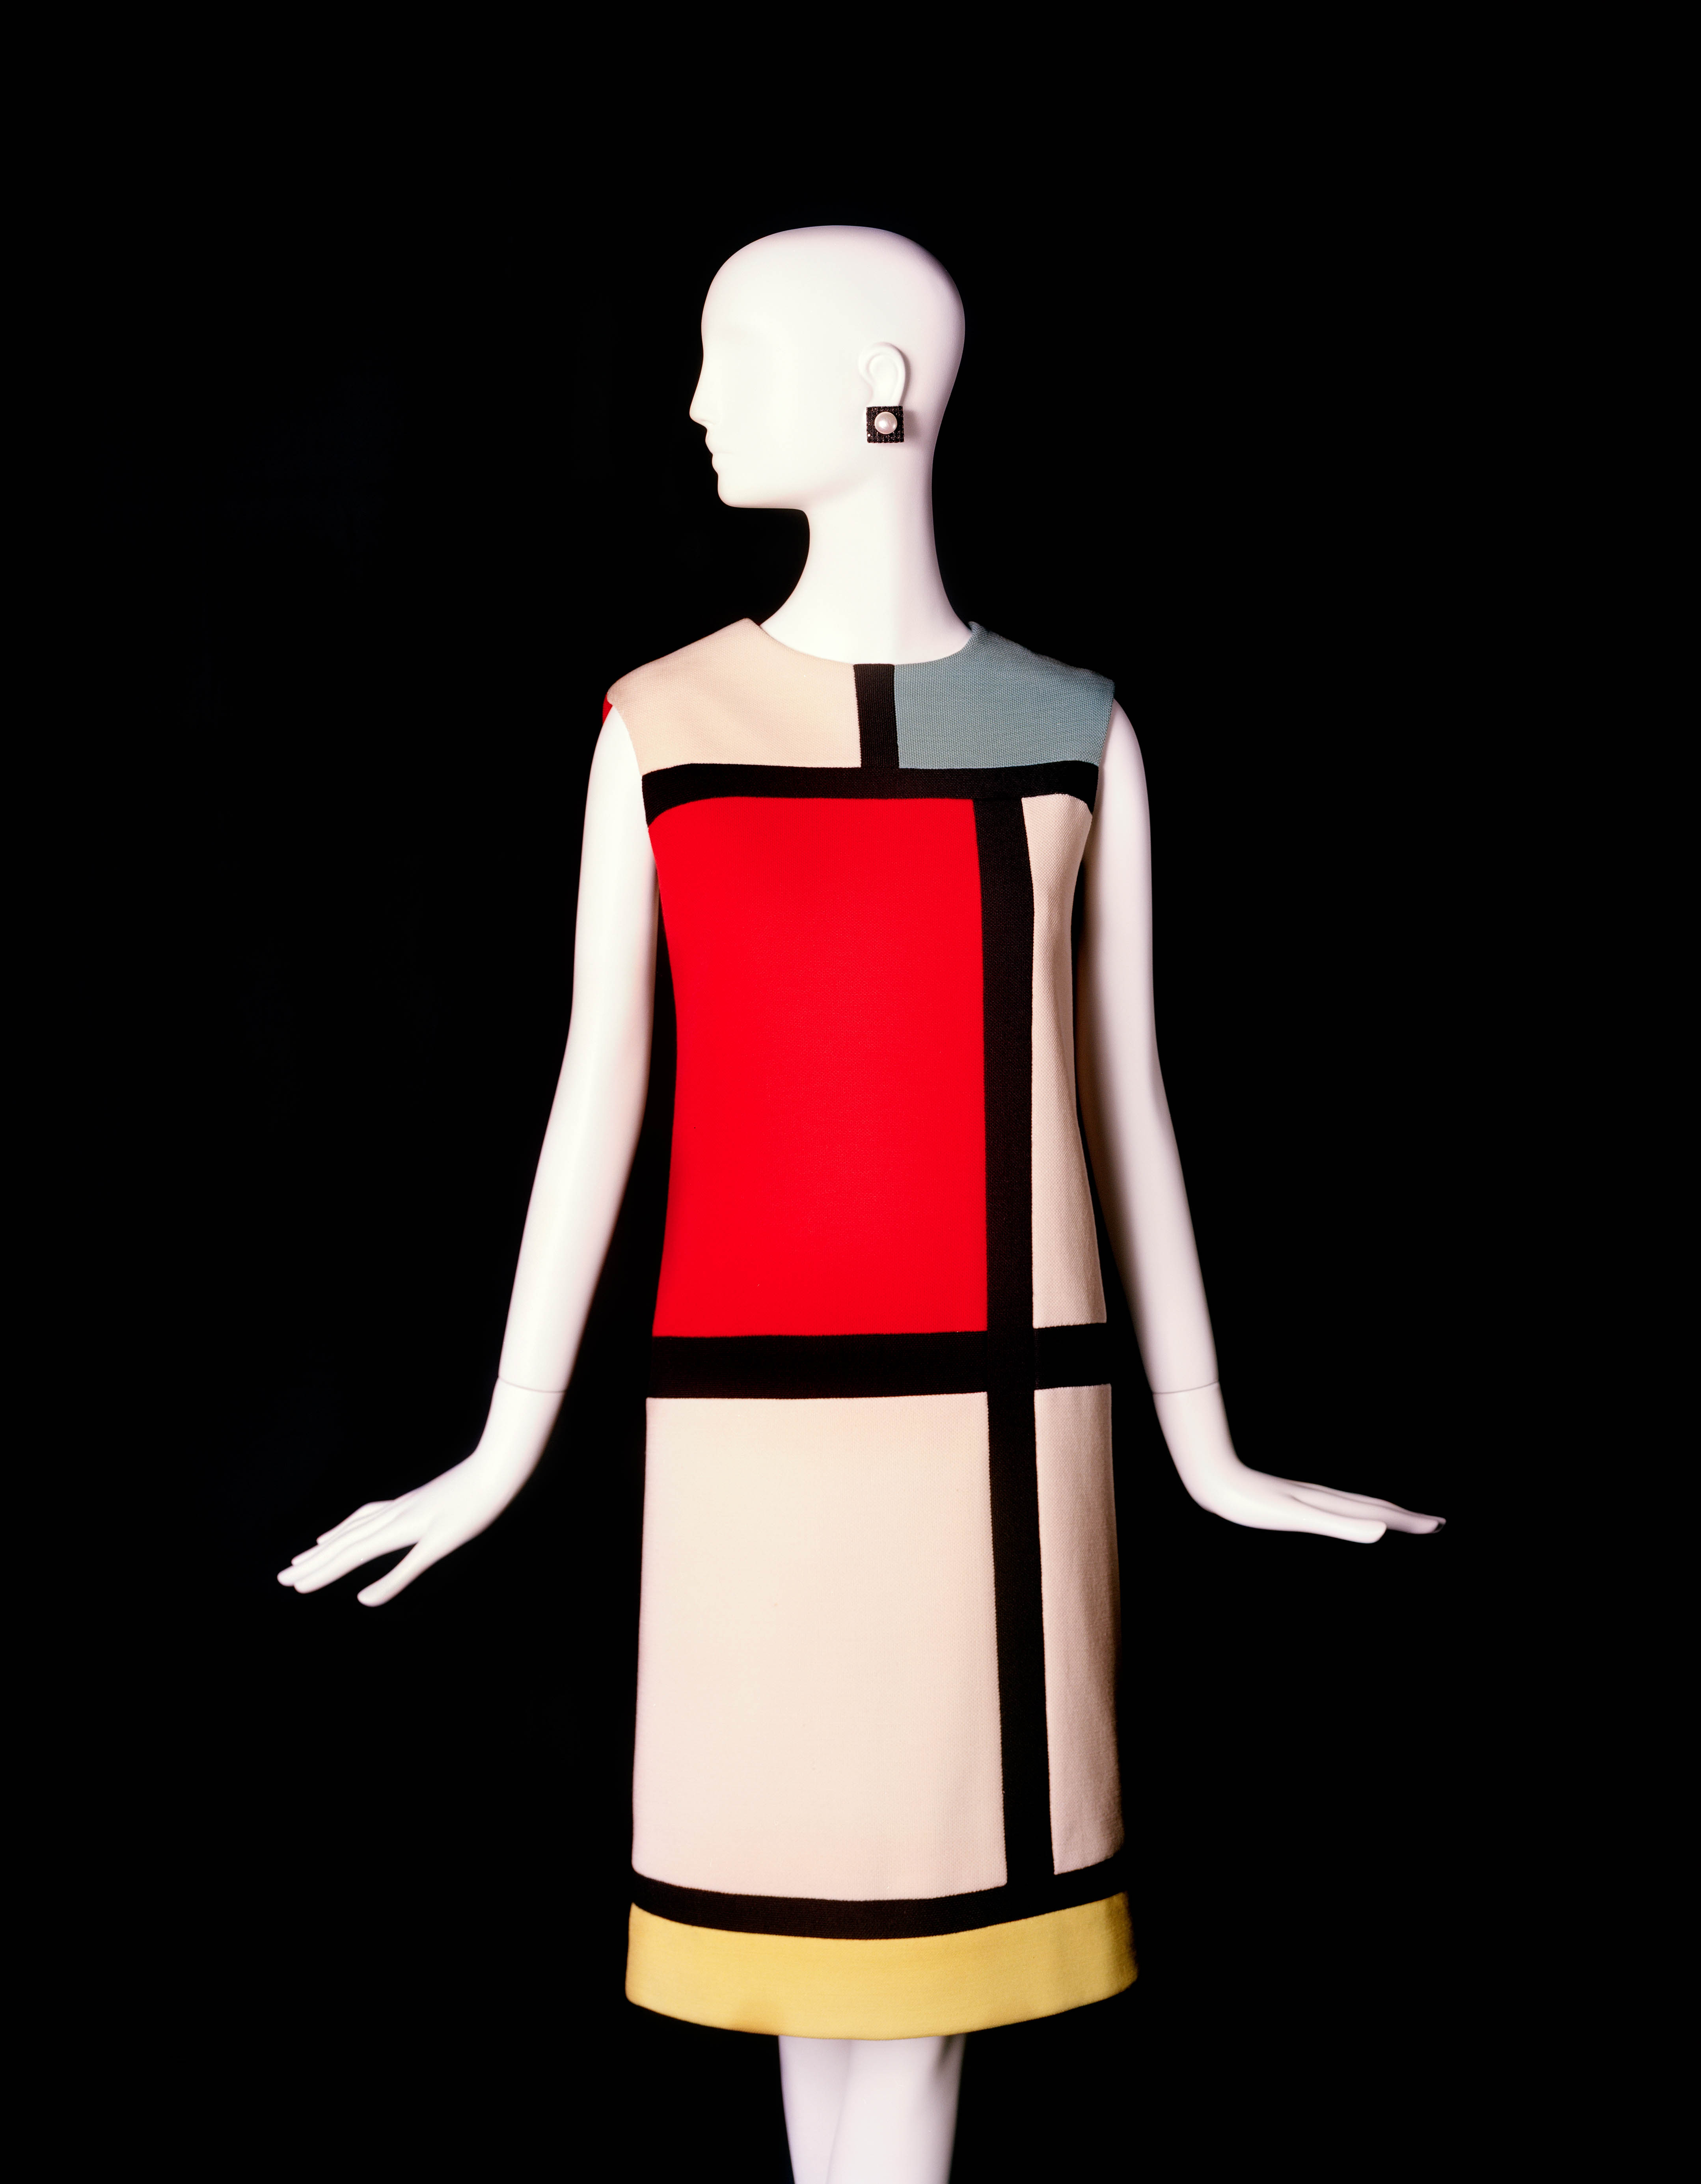 Mondrian Dress - An example of one of the Mondiran dresses is on display at the Bowes Museum, County Durham as part of the YSL retrospective 'Yves Saint Laurent: Style is Eternal'. Exhibition on until 25th October 2015. Image via thebowesmuseum.files.wordpress.com